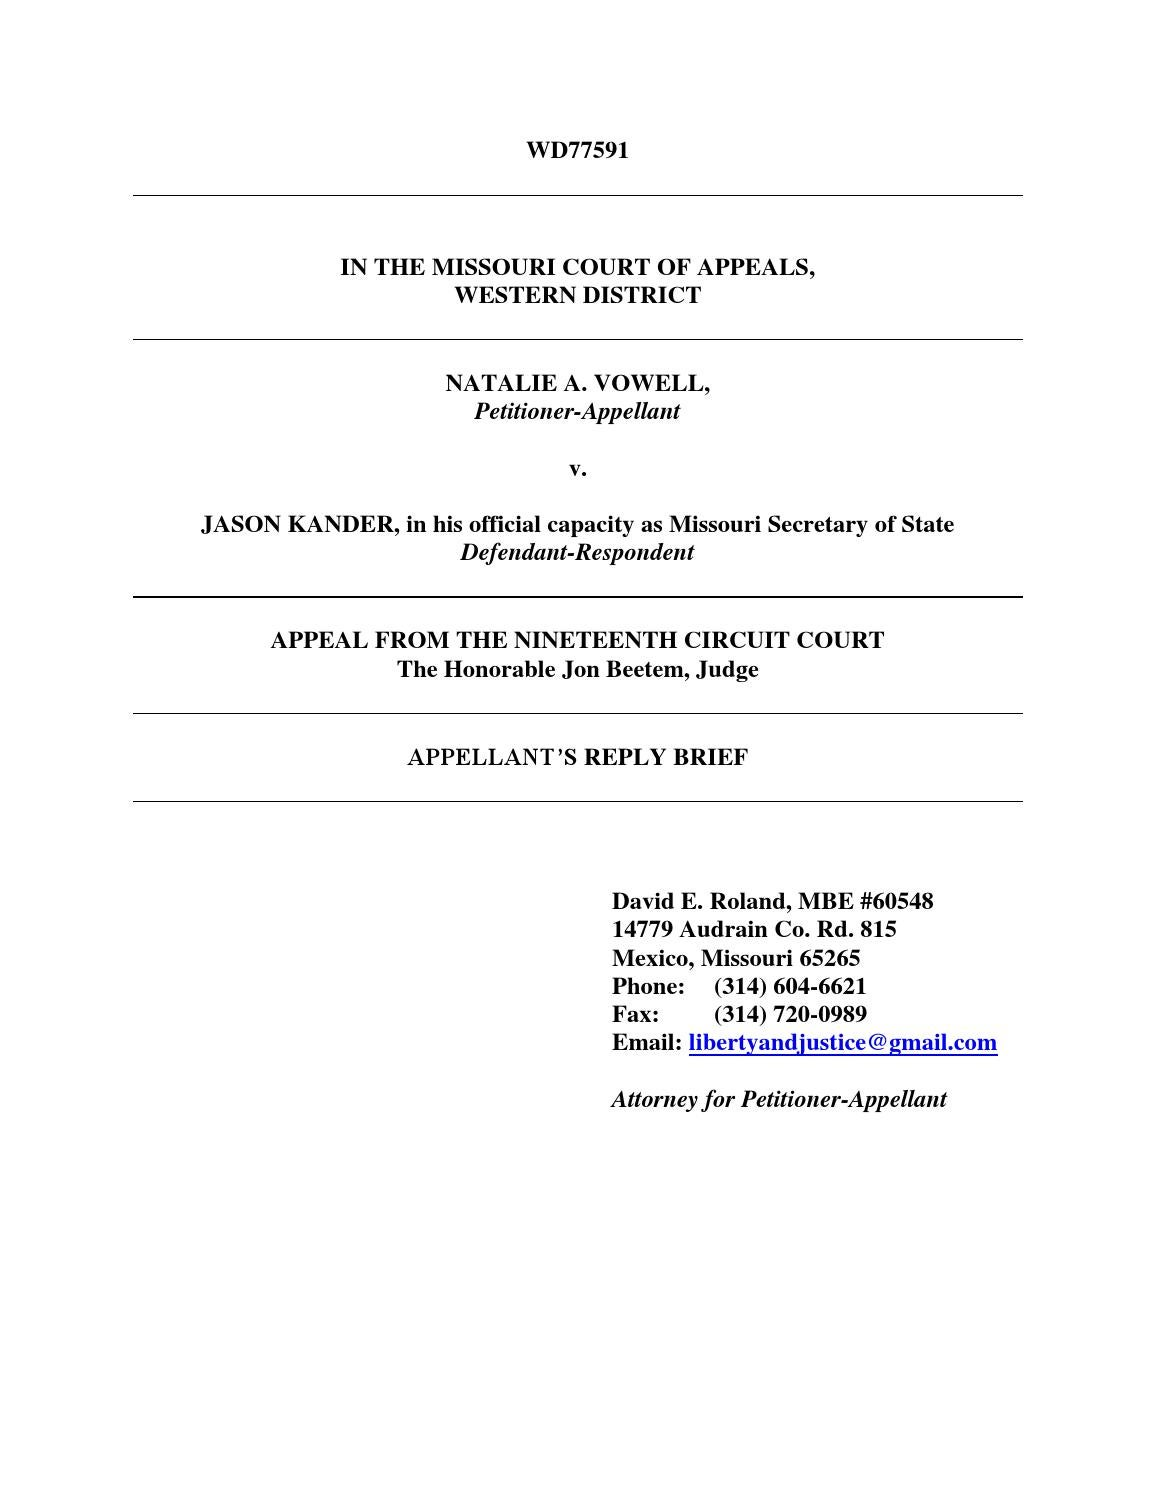 Vowell v kander final appellant's reply brief by David Roland - issuu